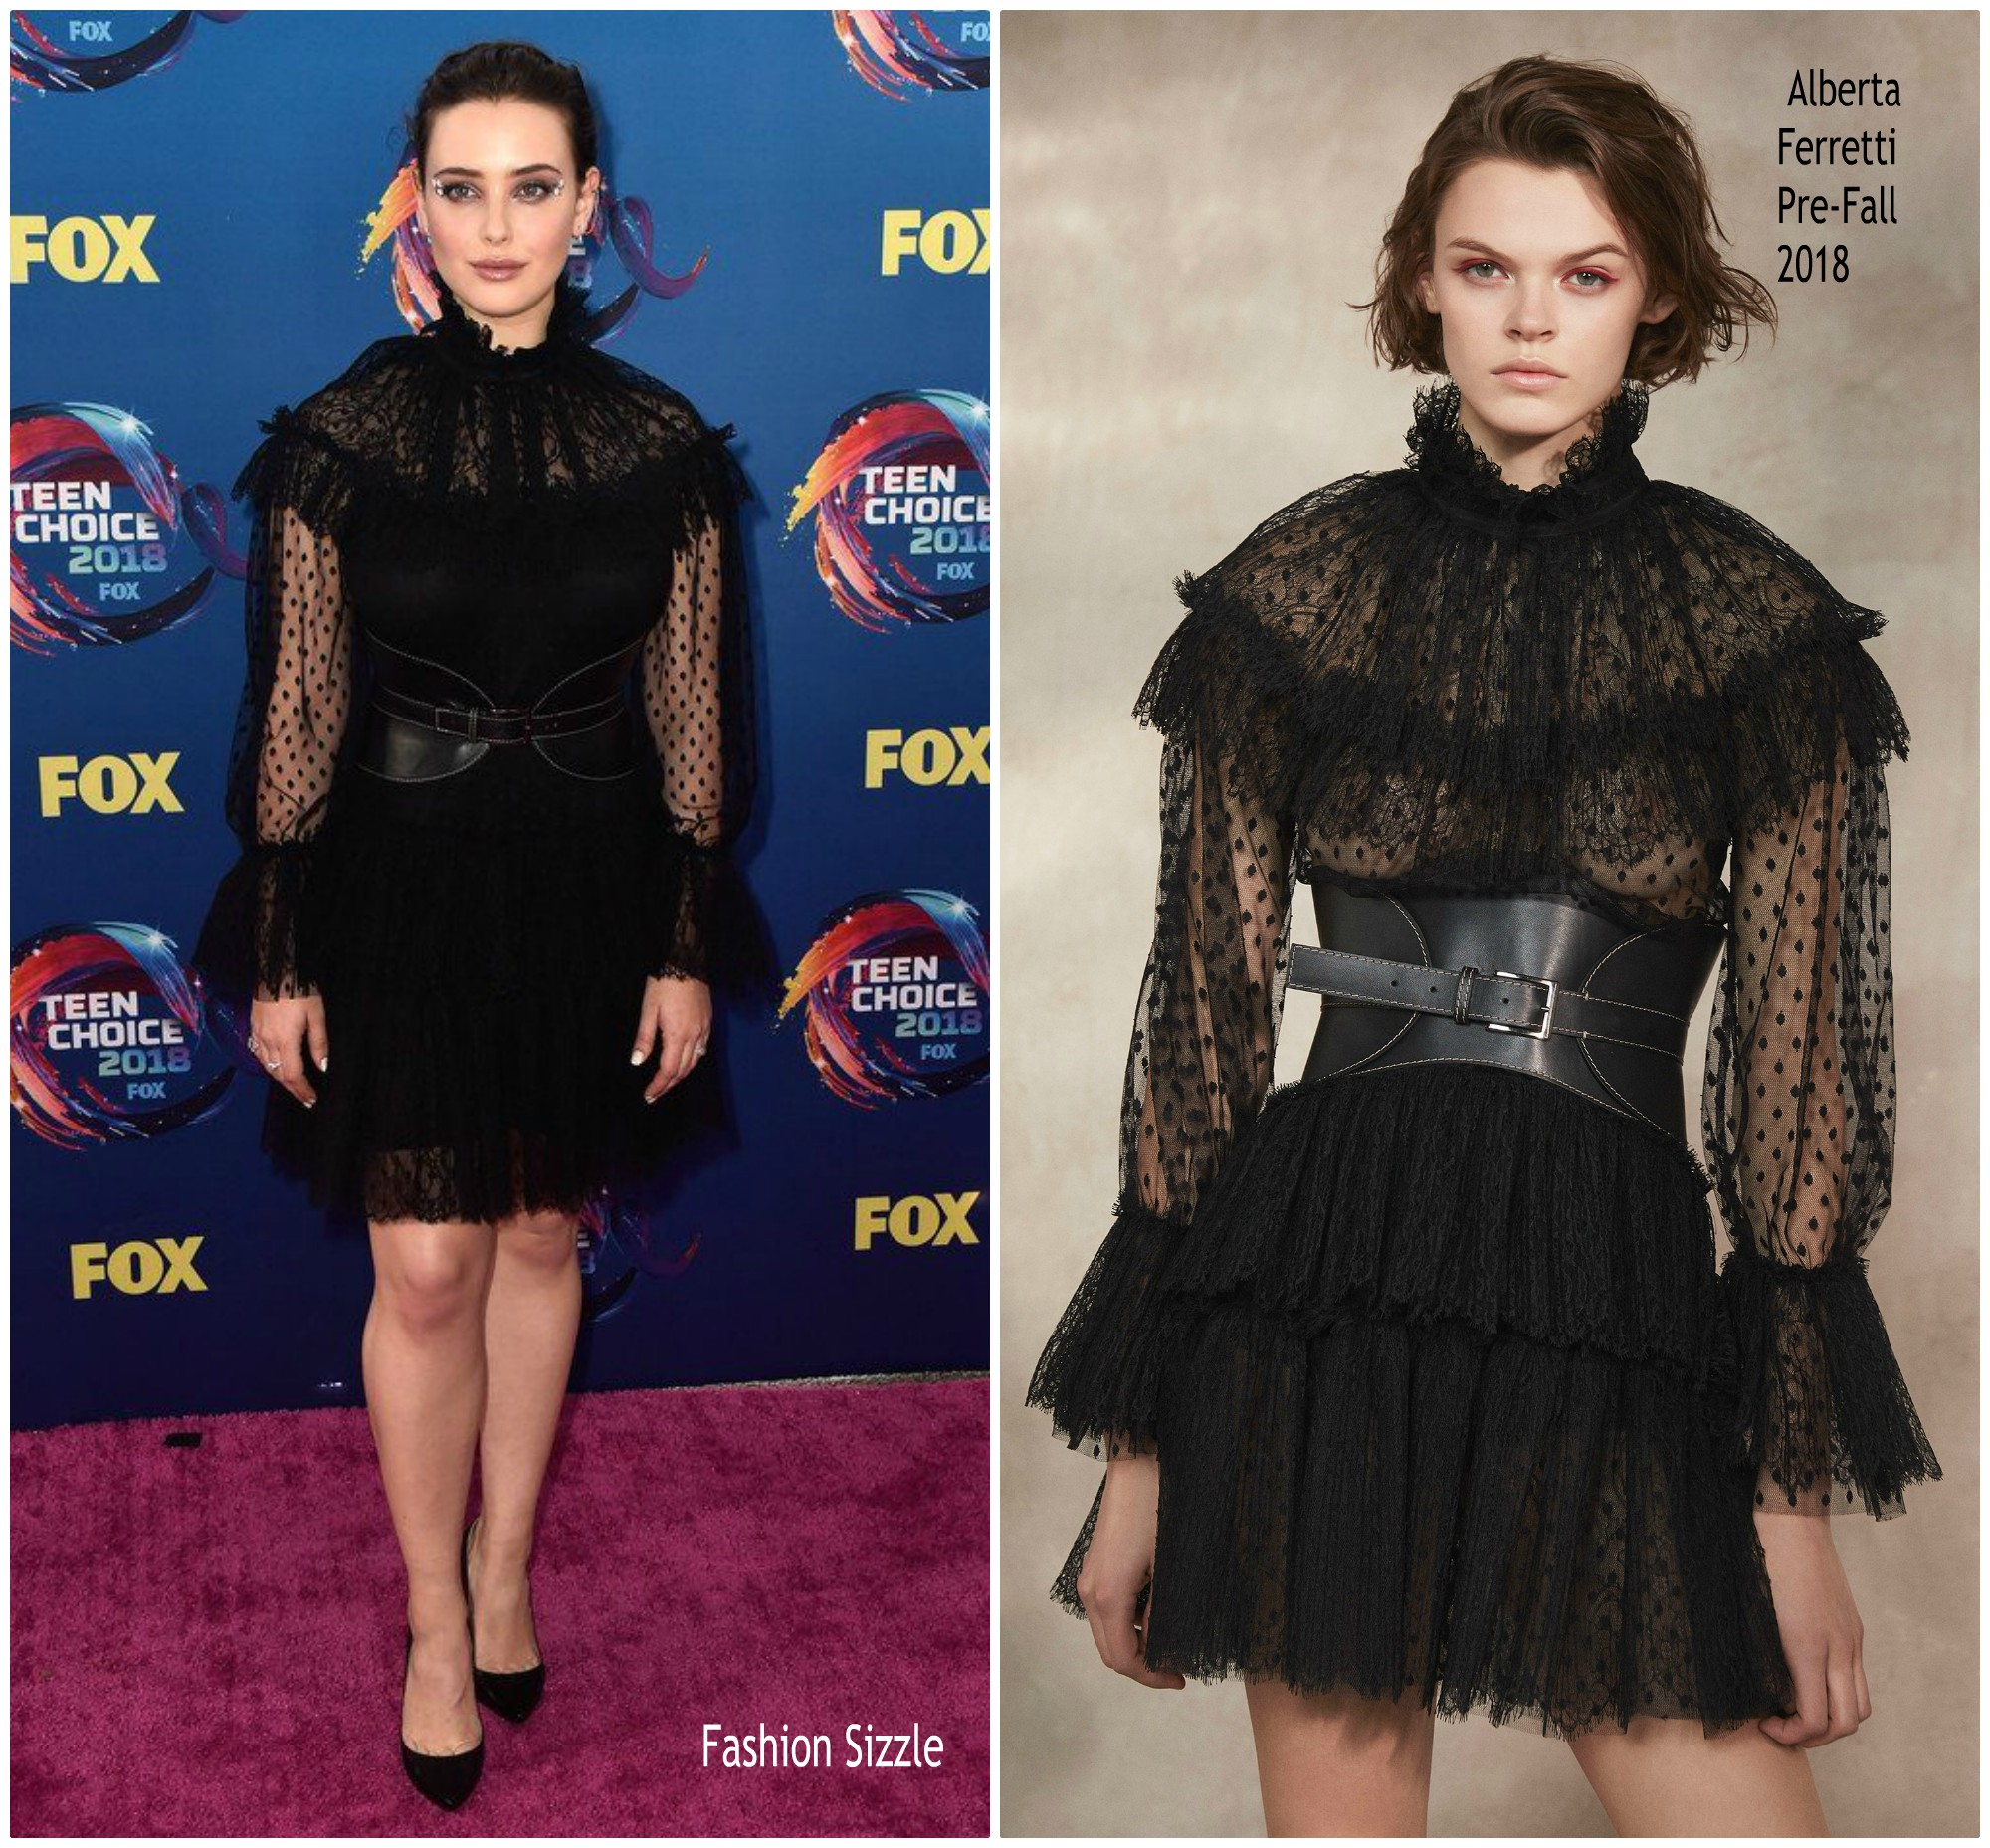 katherine-langford-in-alberta-ferretti-2018-teen-choice-awards